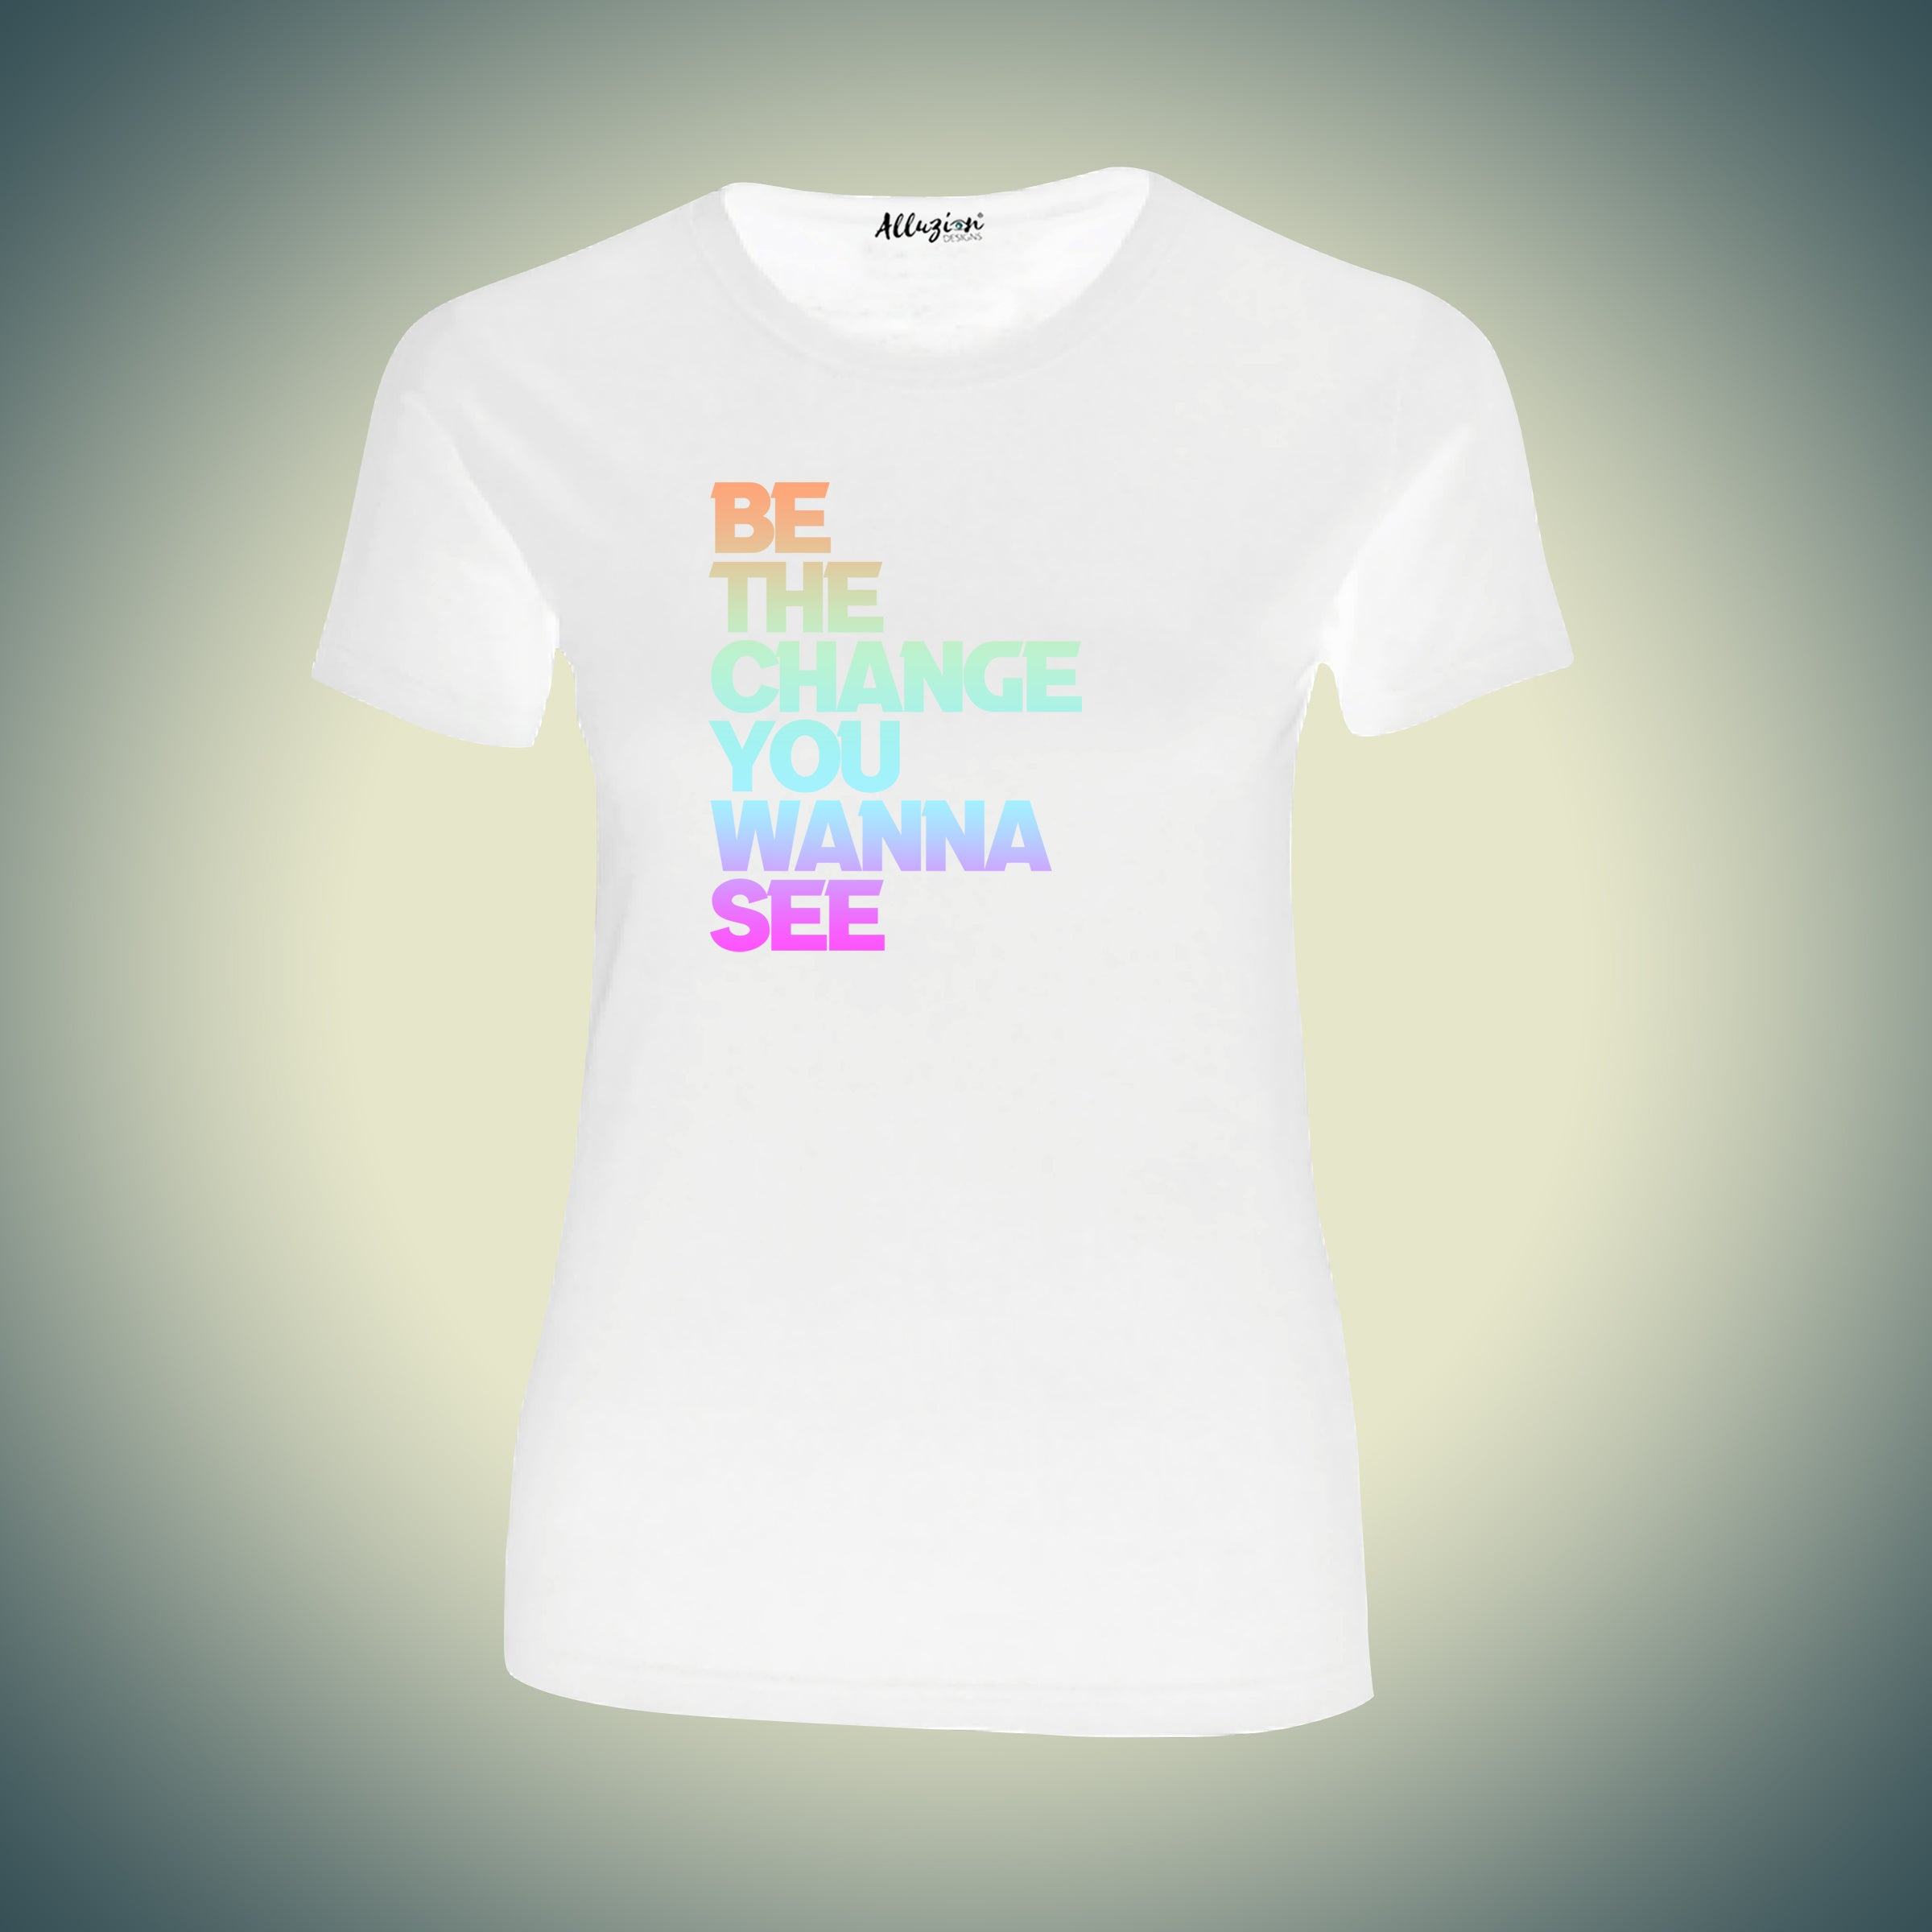 Be the Change You Wanna See Graphic T-shirt